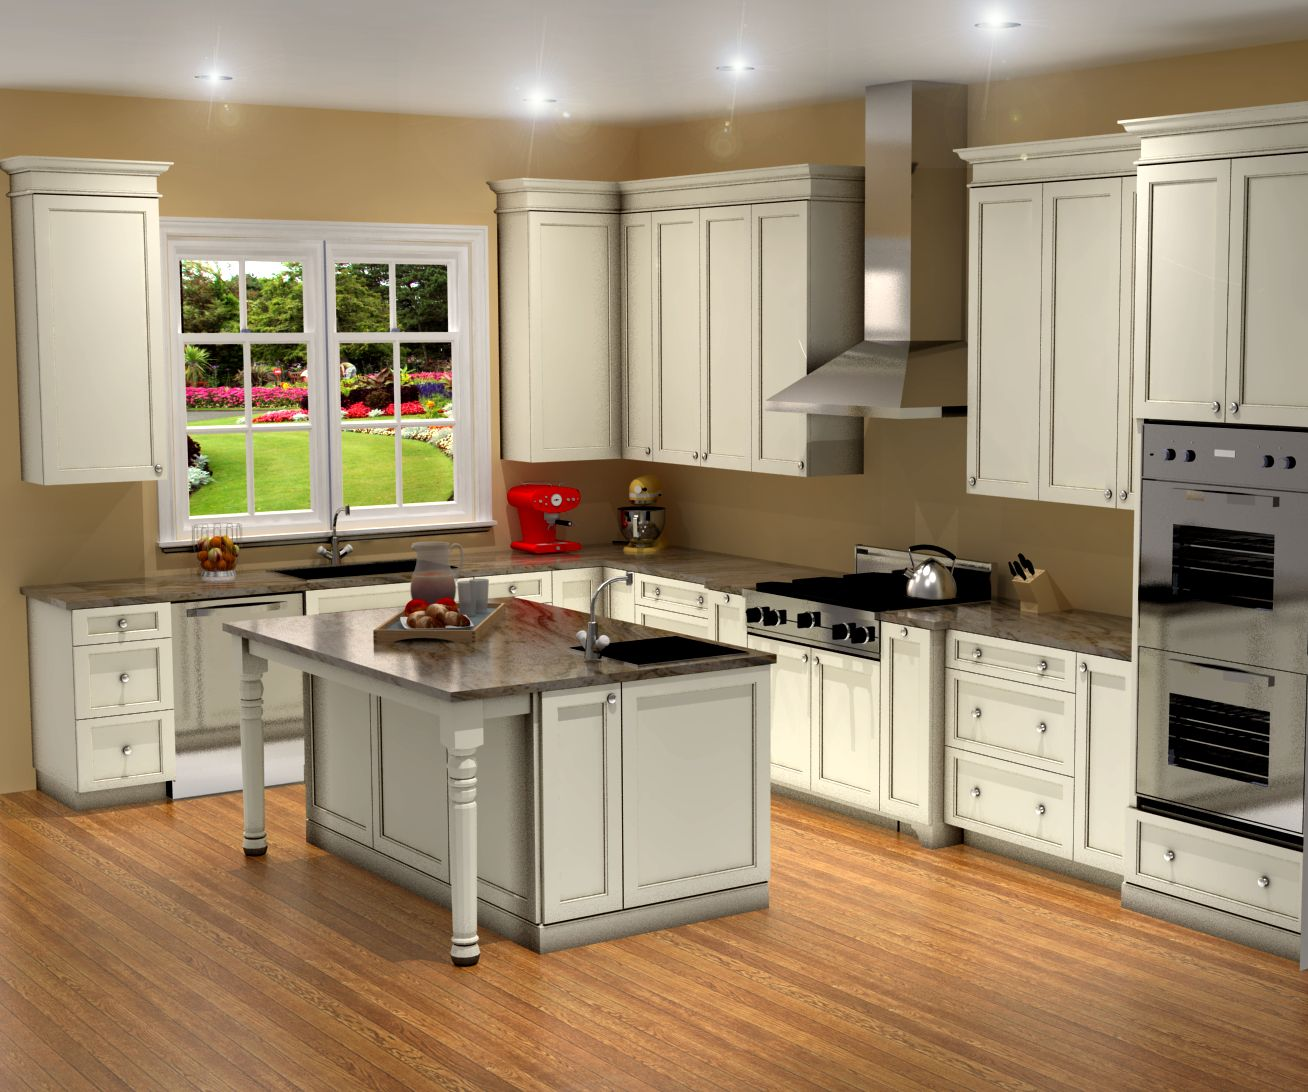 Traditional white kitchen design 3d rendering nick for White kitchen designs